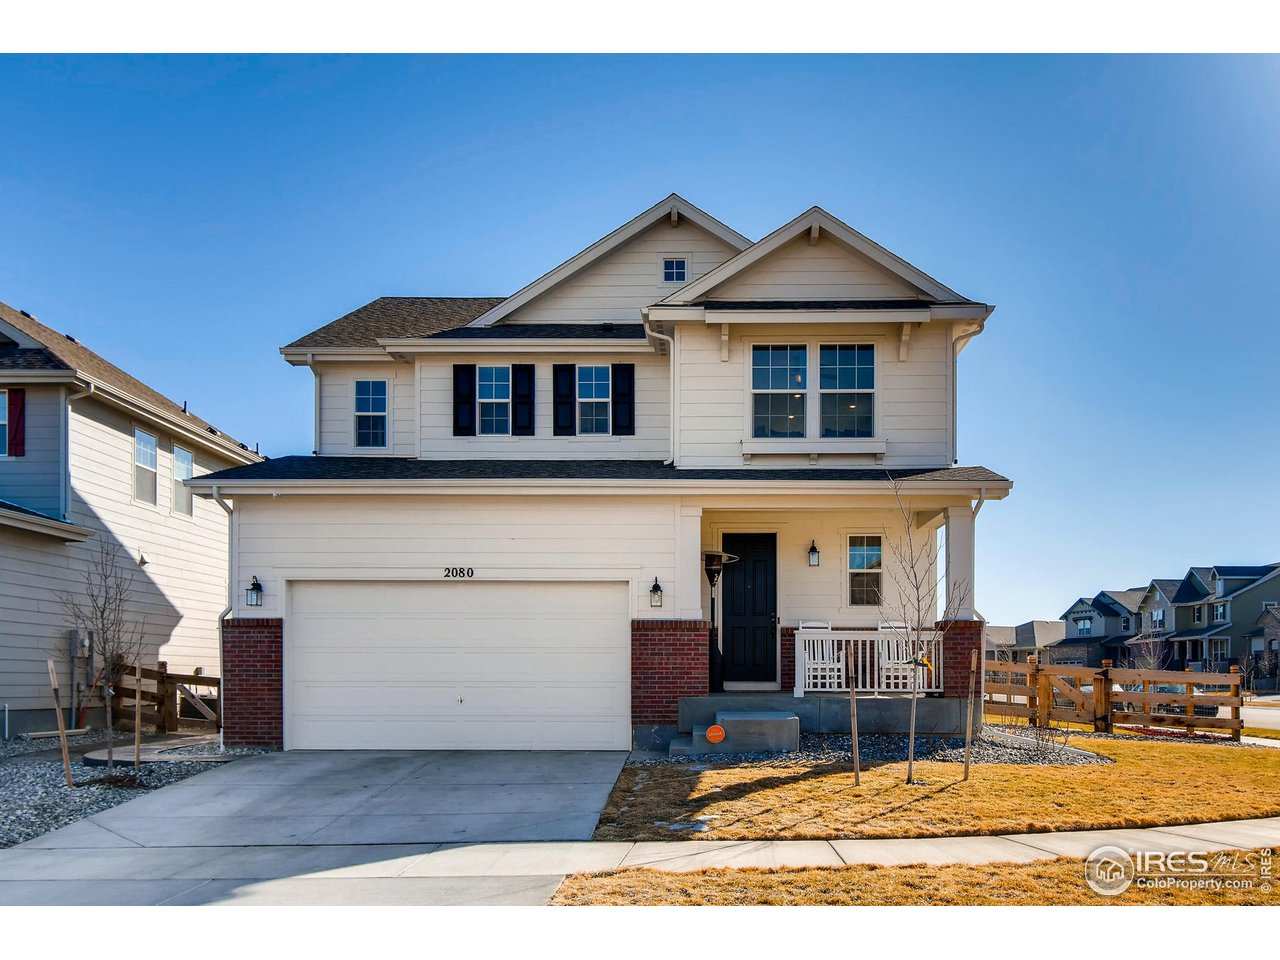 2080 Sicily Cir, Longmont CO 80503